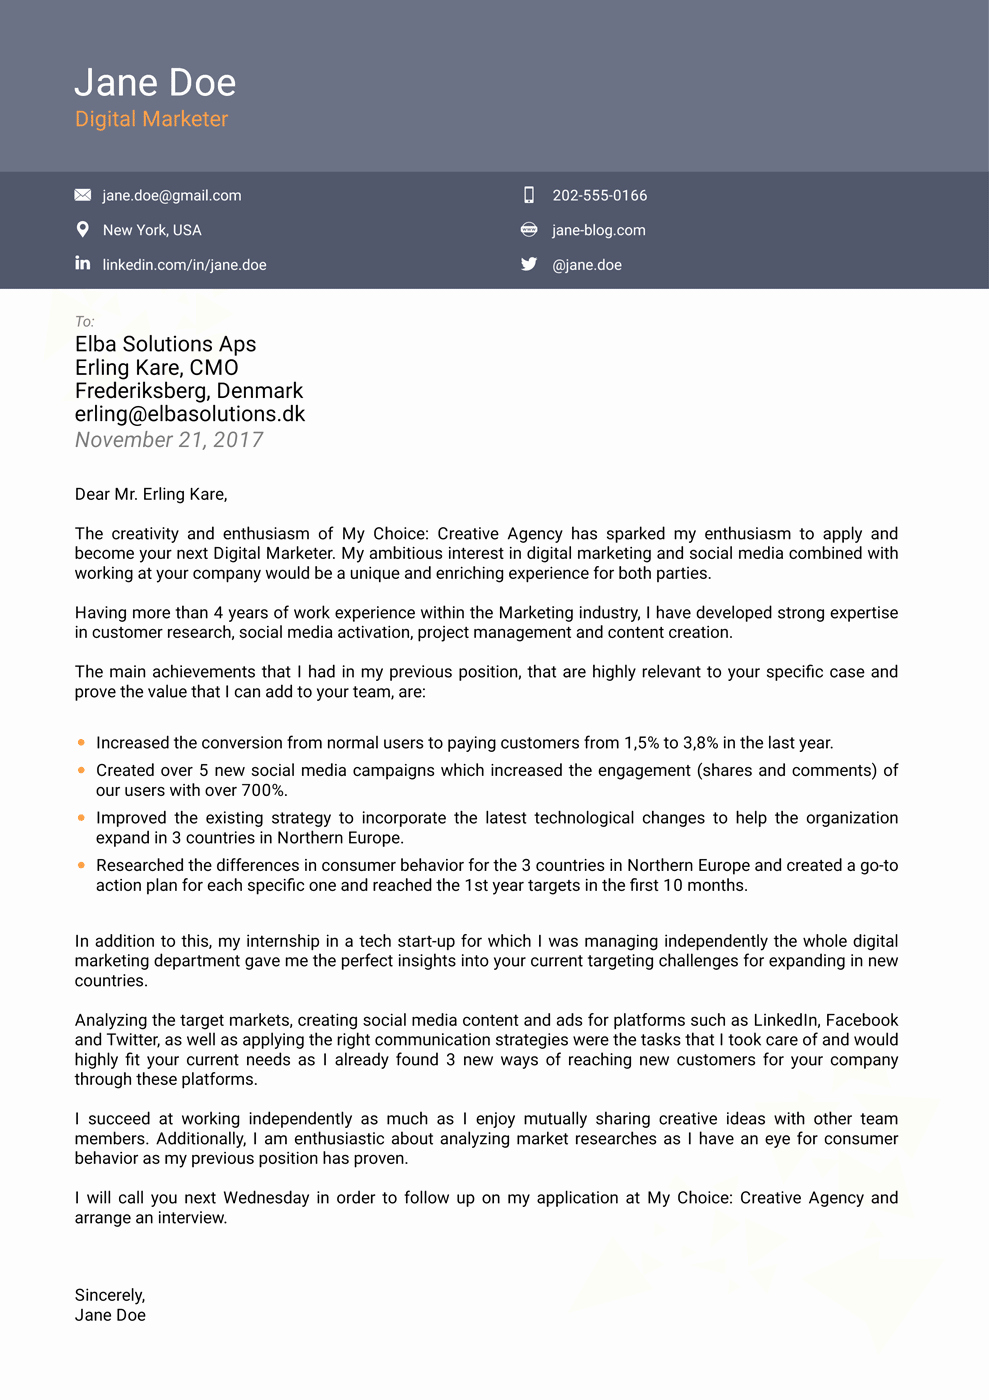 Free Resume Cover Letter Samples Beautiful 2018 Professional Cover Letter Templates Download now